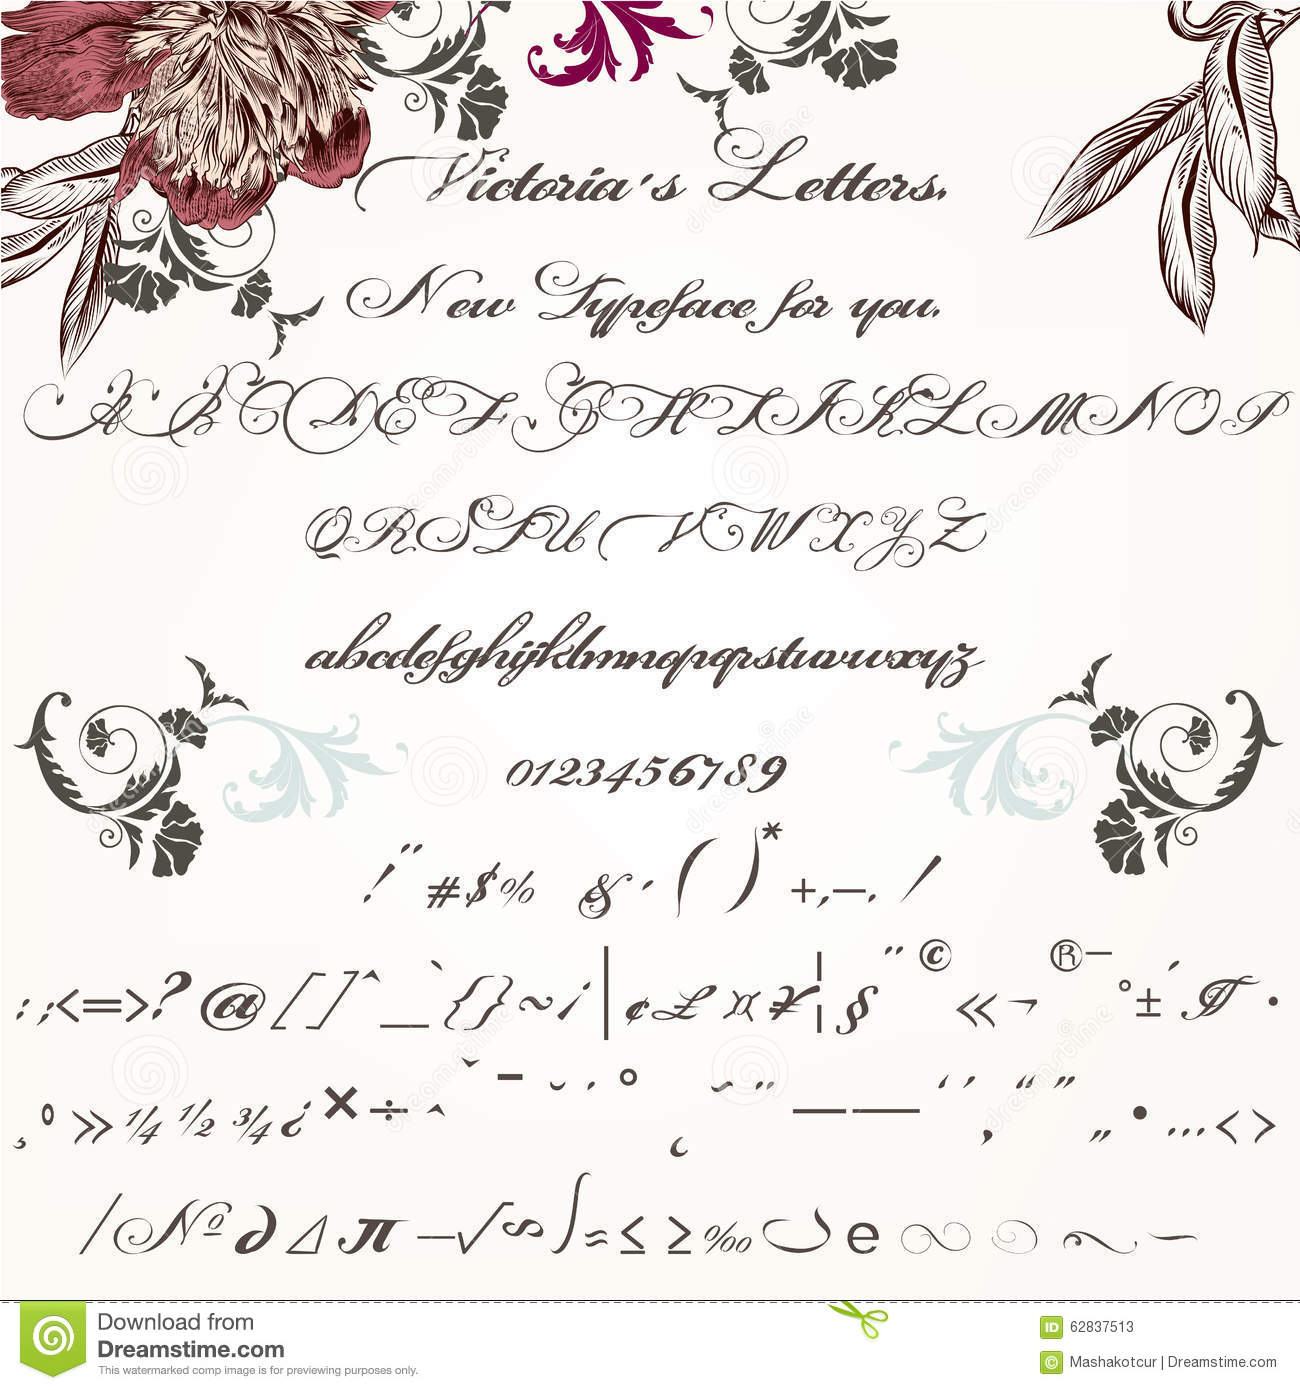 Calligraphy Fonts Victorian Beautiful Hand Made Script Typeface Or Font In Vintage Victorian